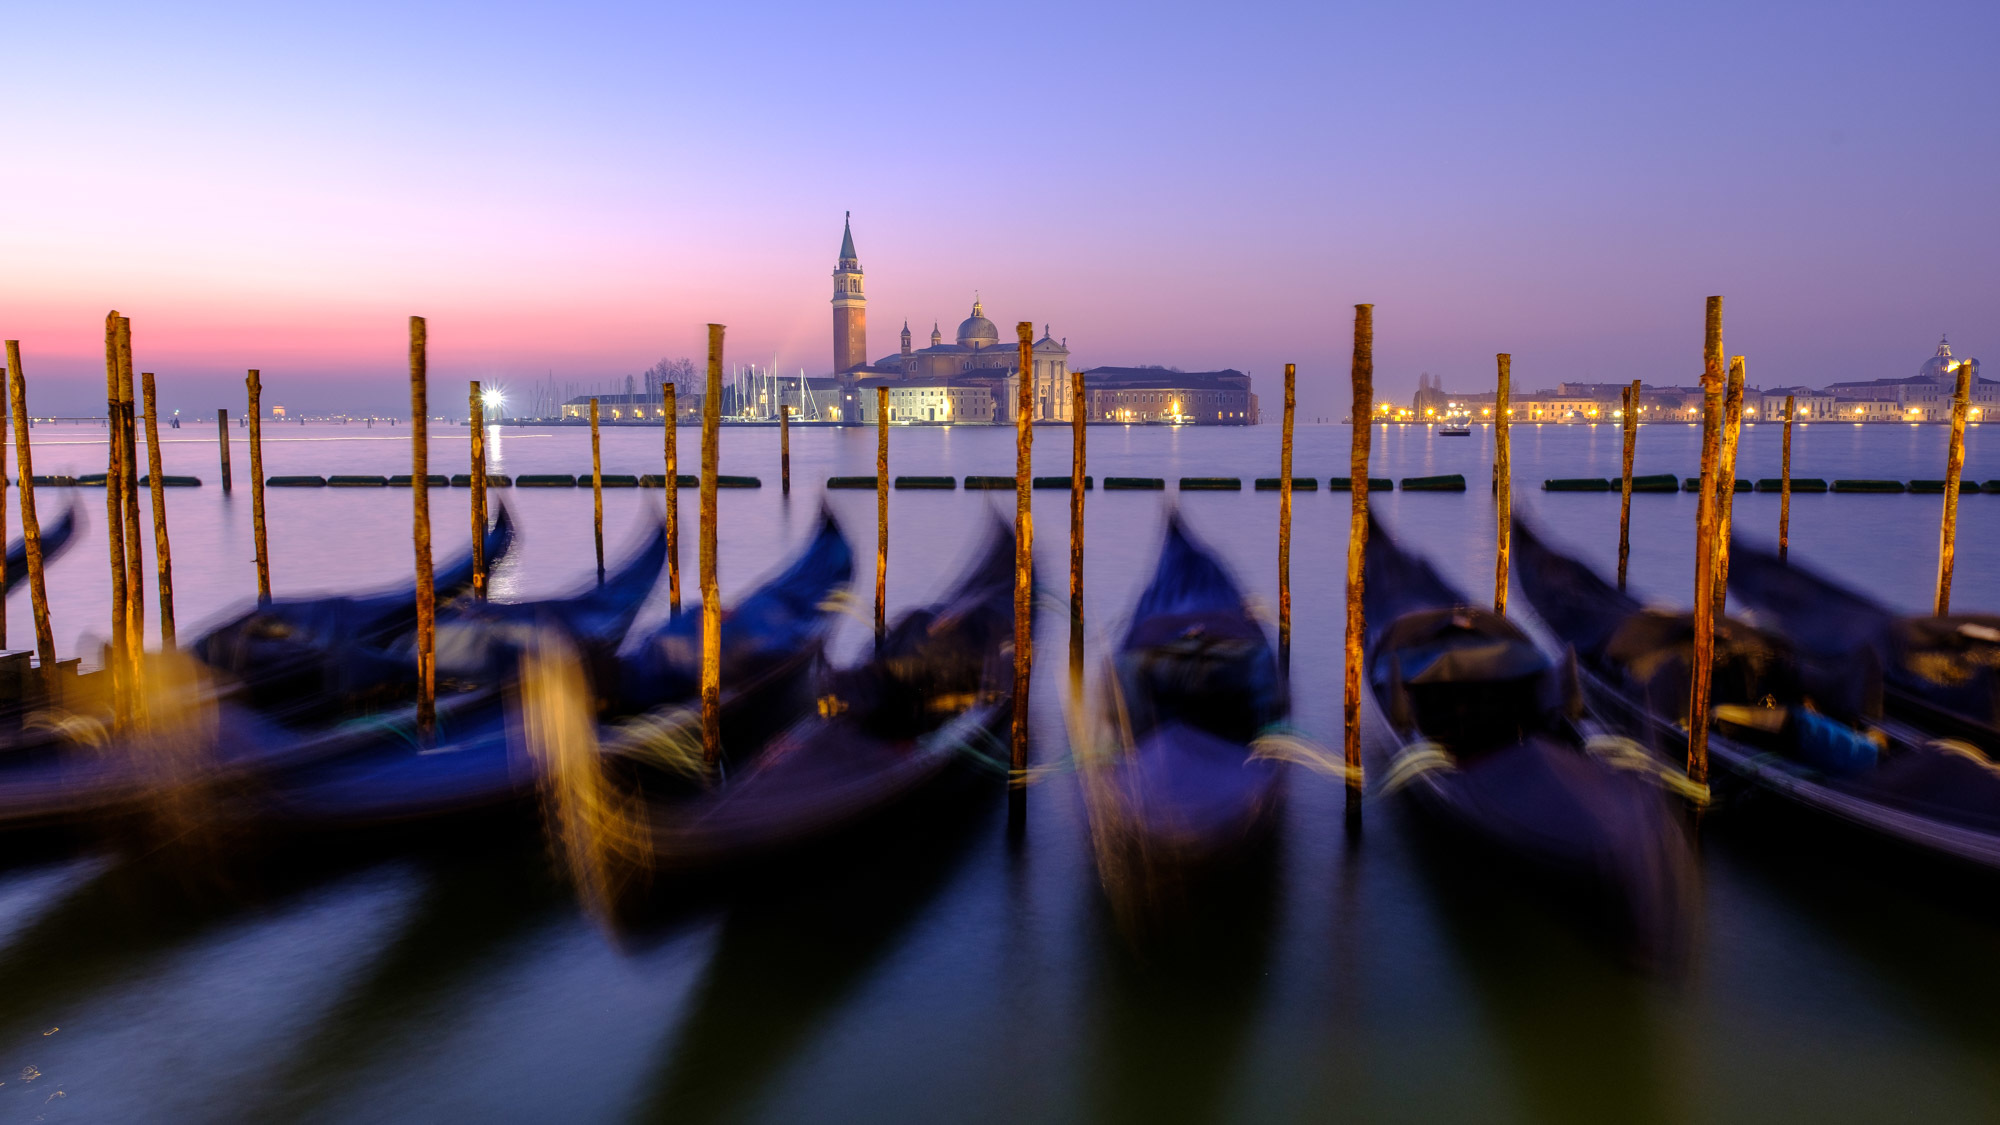 Gondolas in St. Mark's Square, Venice